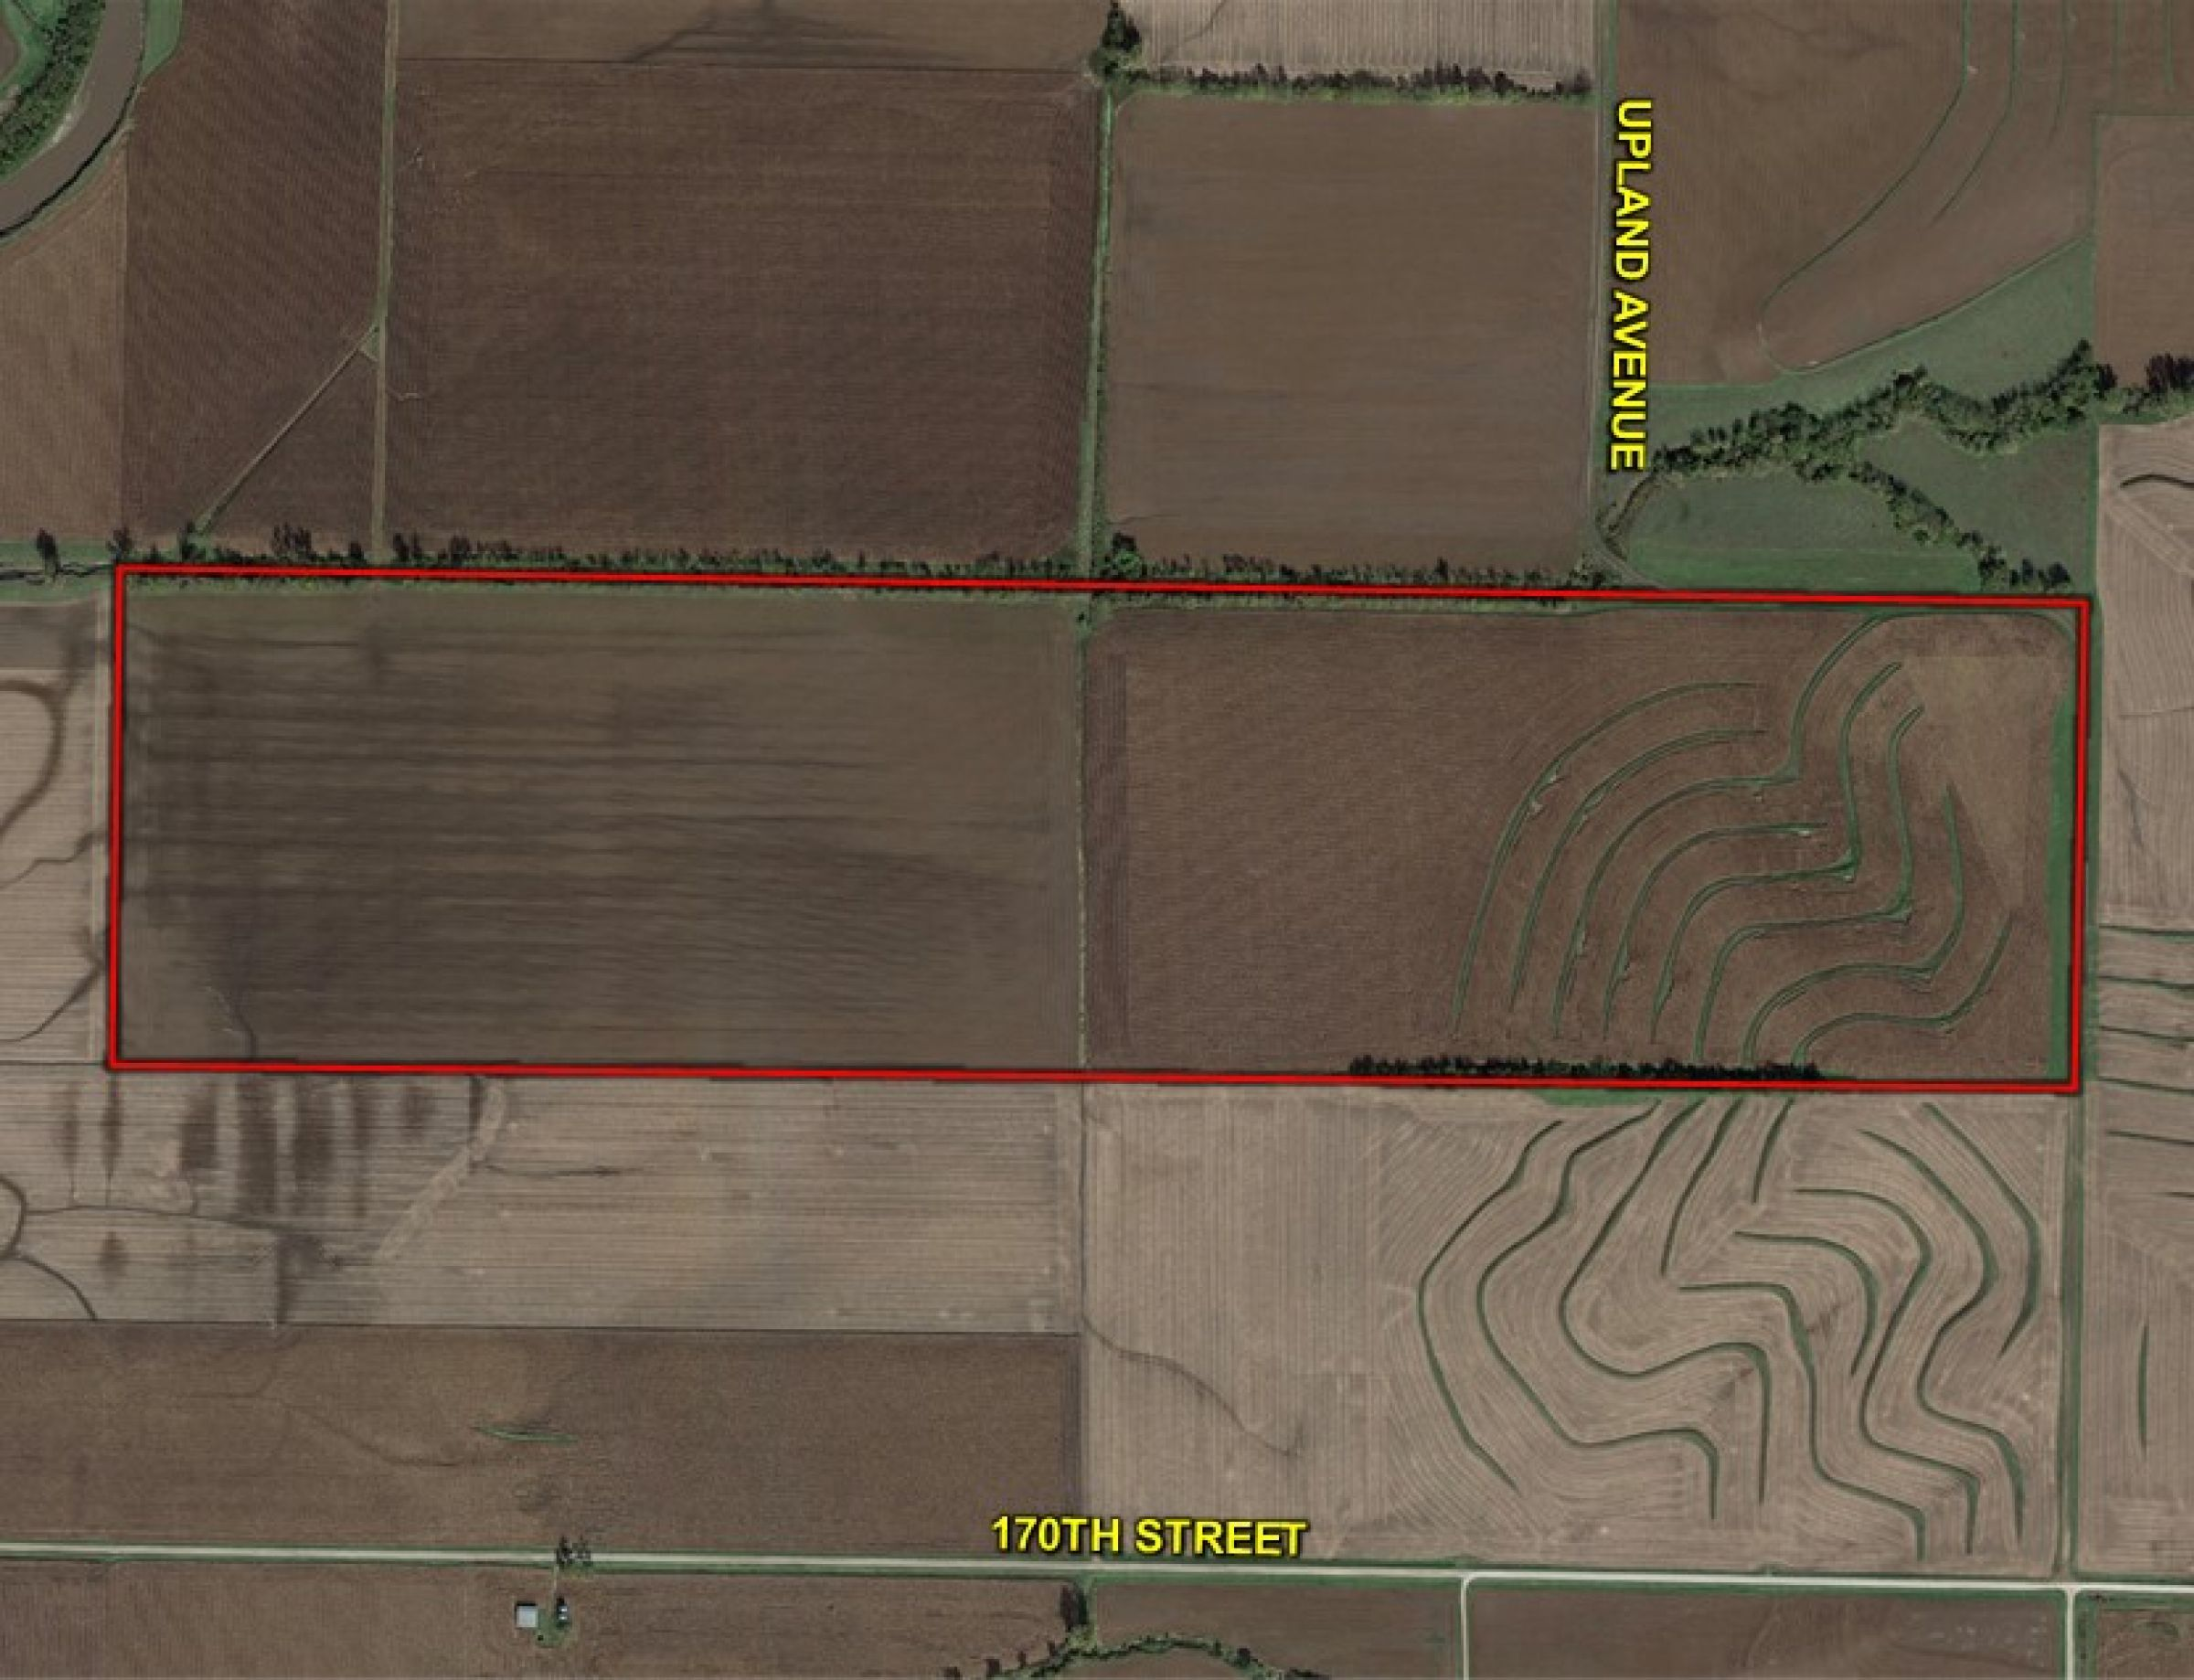 land-page-county-iowa-160-acres-listing-number-15117-2-2020-08-13-175514.jpg